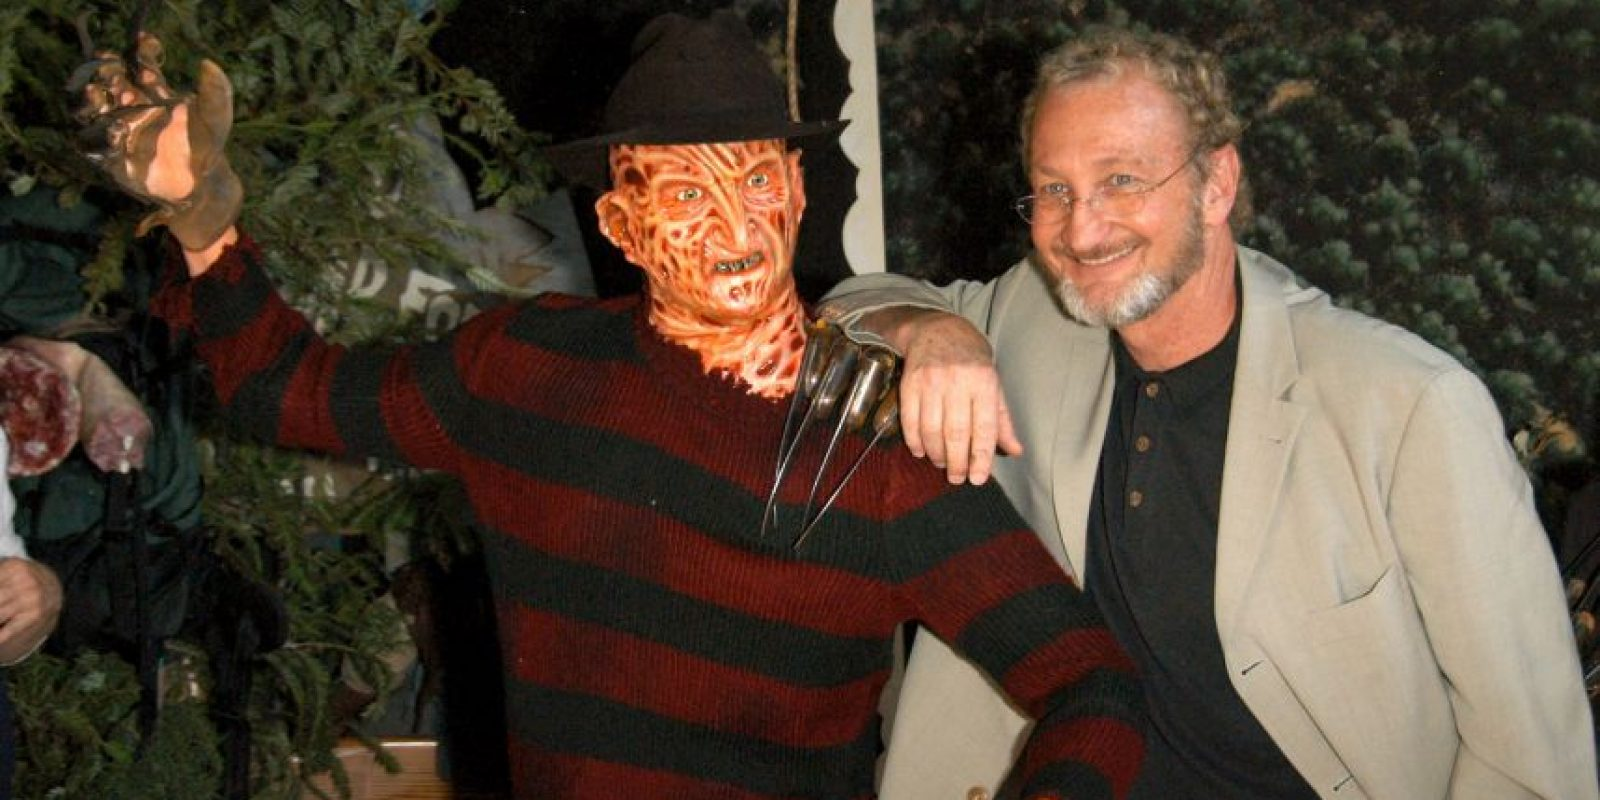 Getty Images Foto: Fue interpretado por el actor Robert Englund poses with Freddy wax